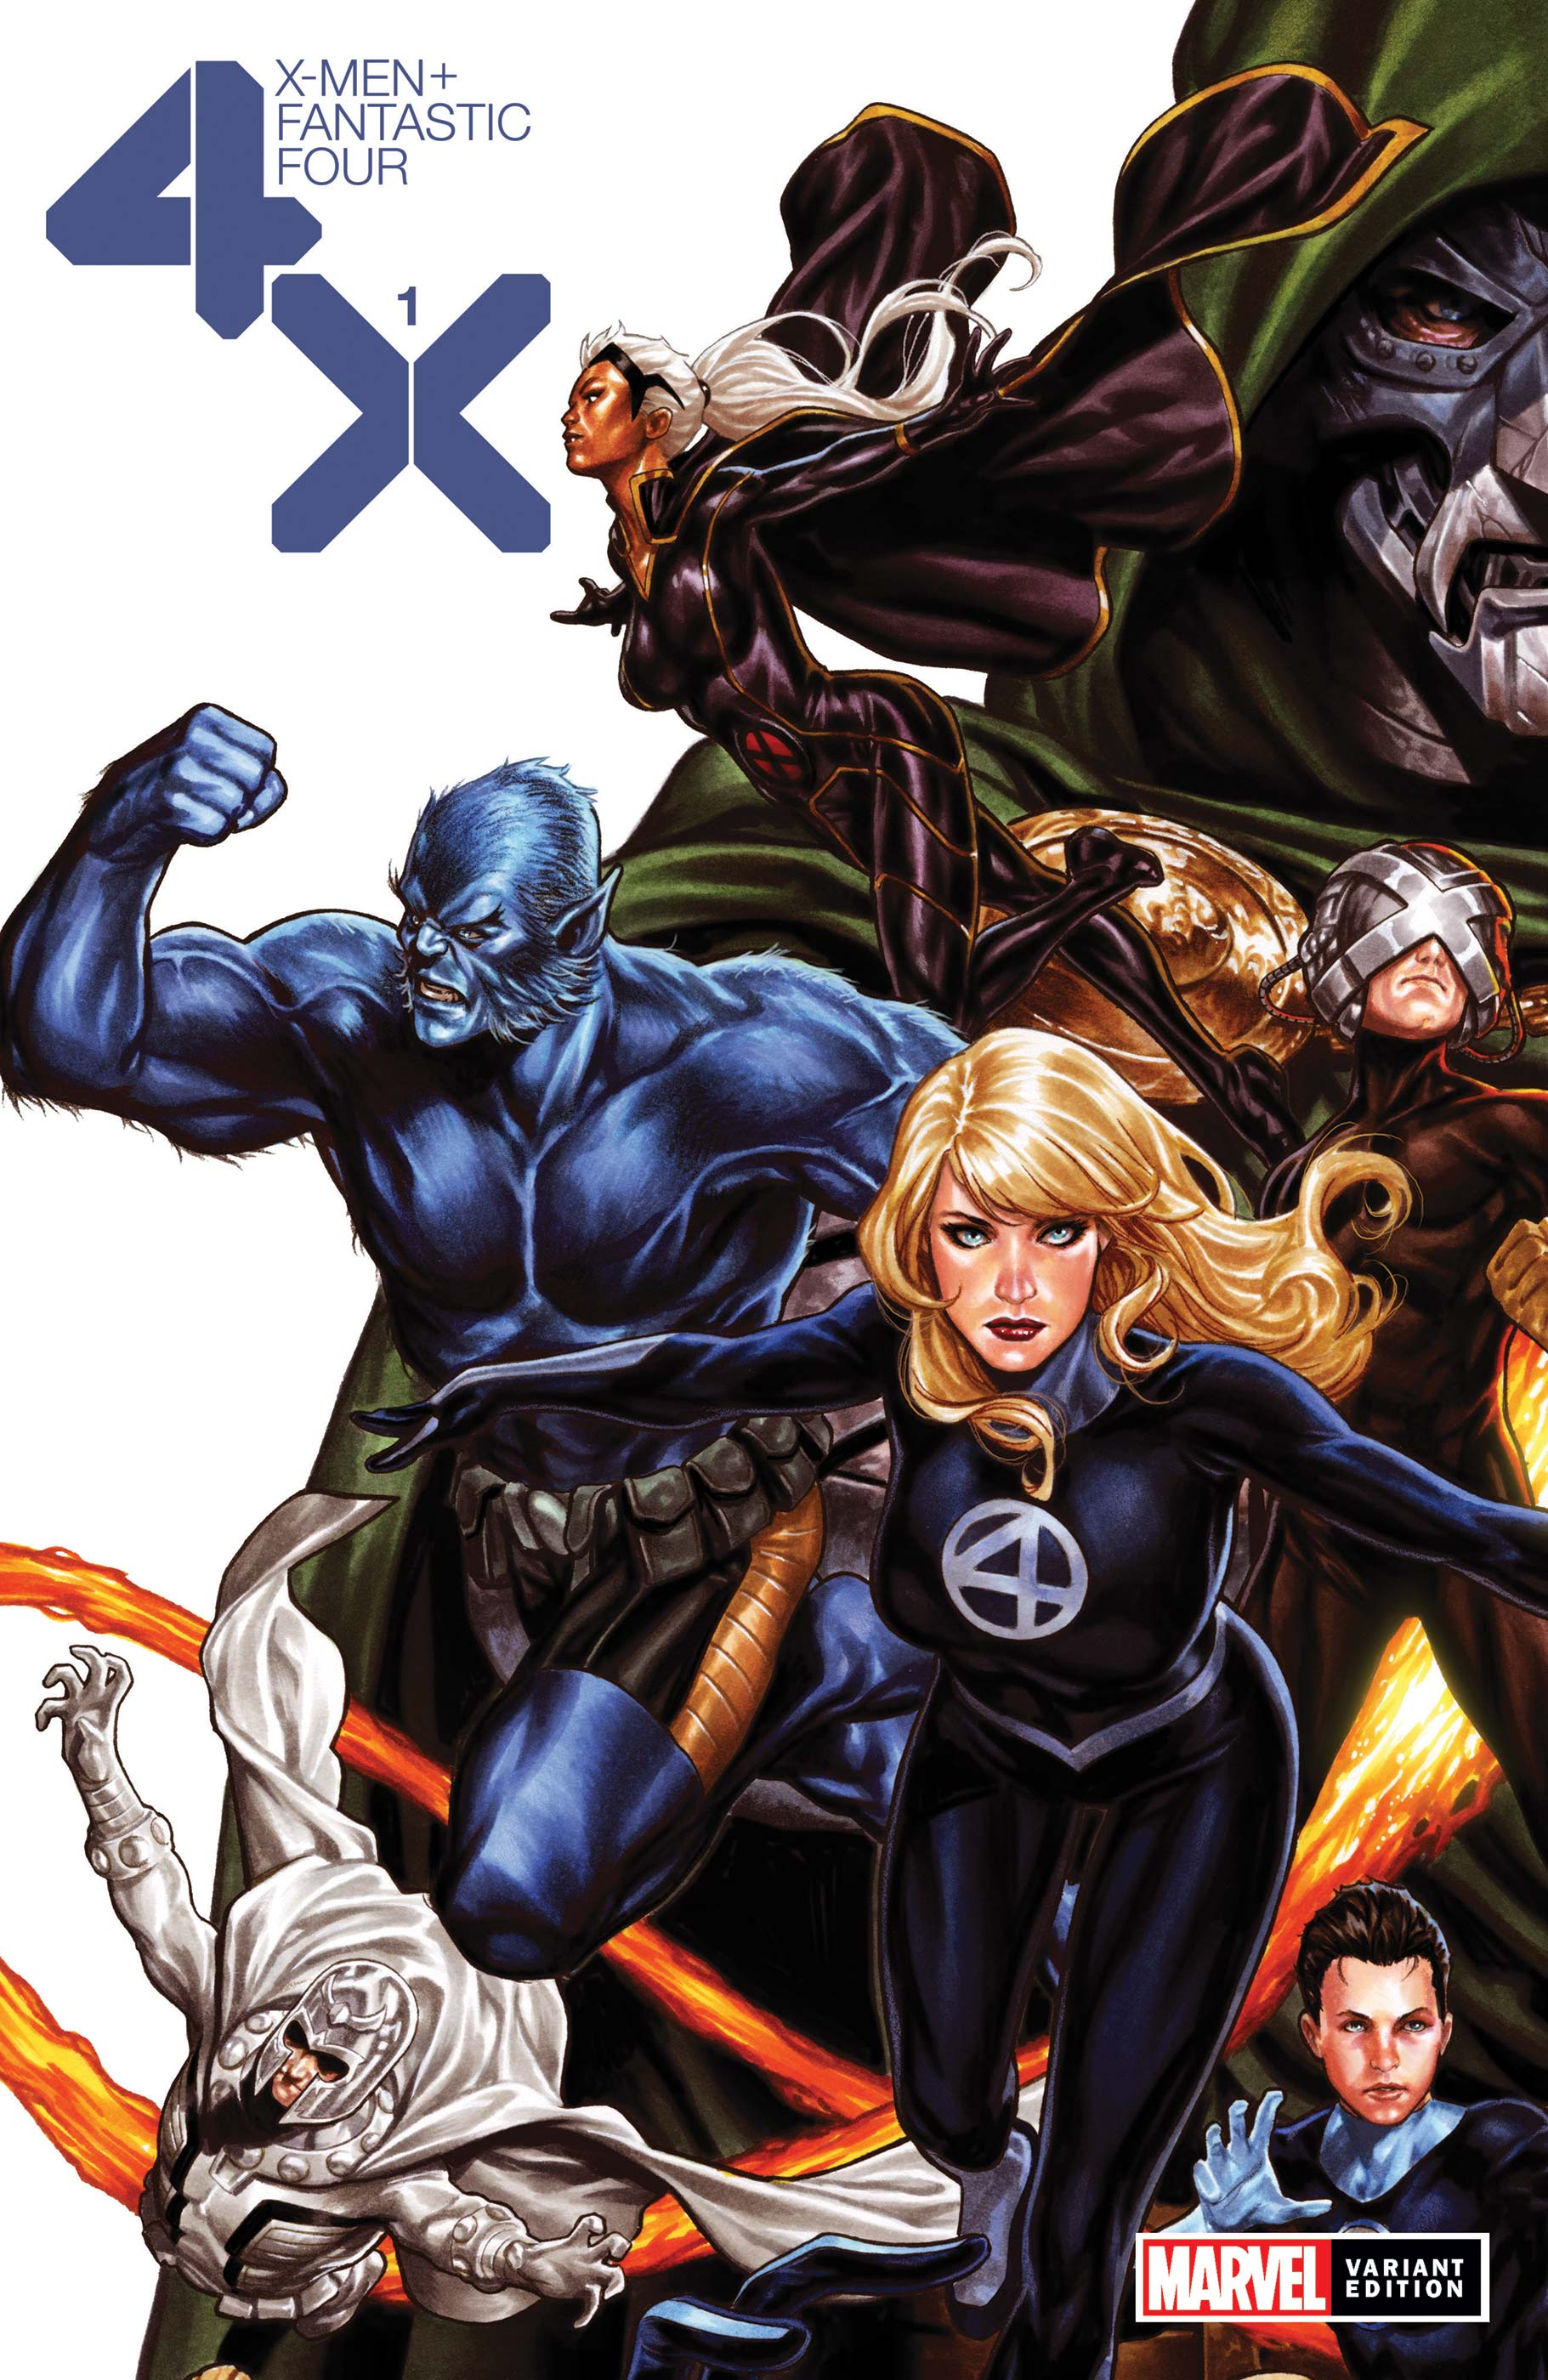 X-Men/Fantastic Four (2020) #1 (Variant)